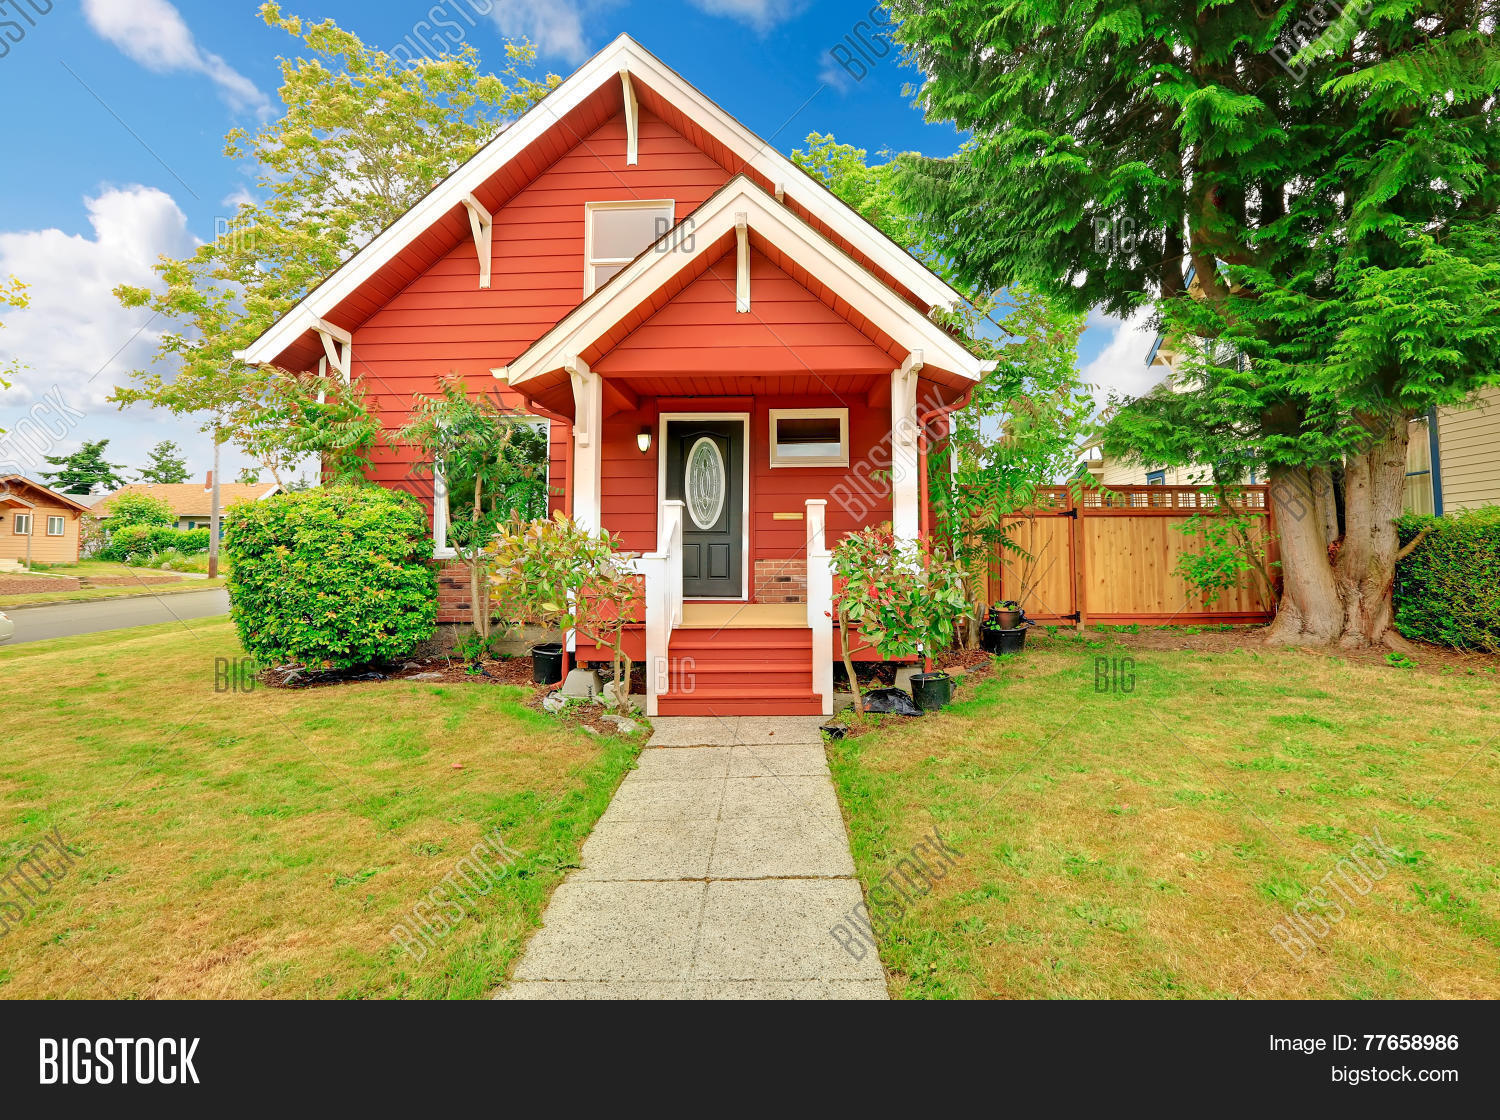 Popular trim colors for white houses - Small Coutnryside House Exterior In Bright Red Color With White Trim